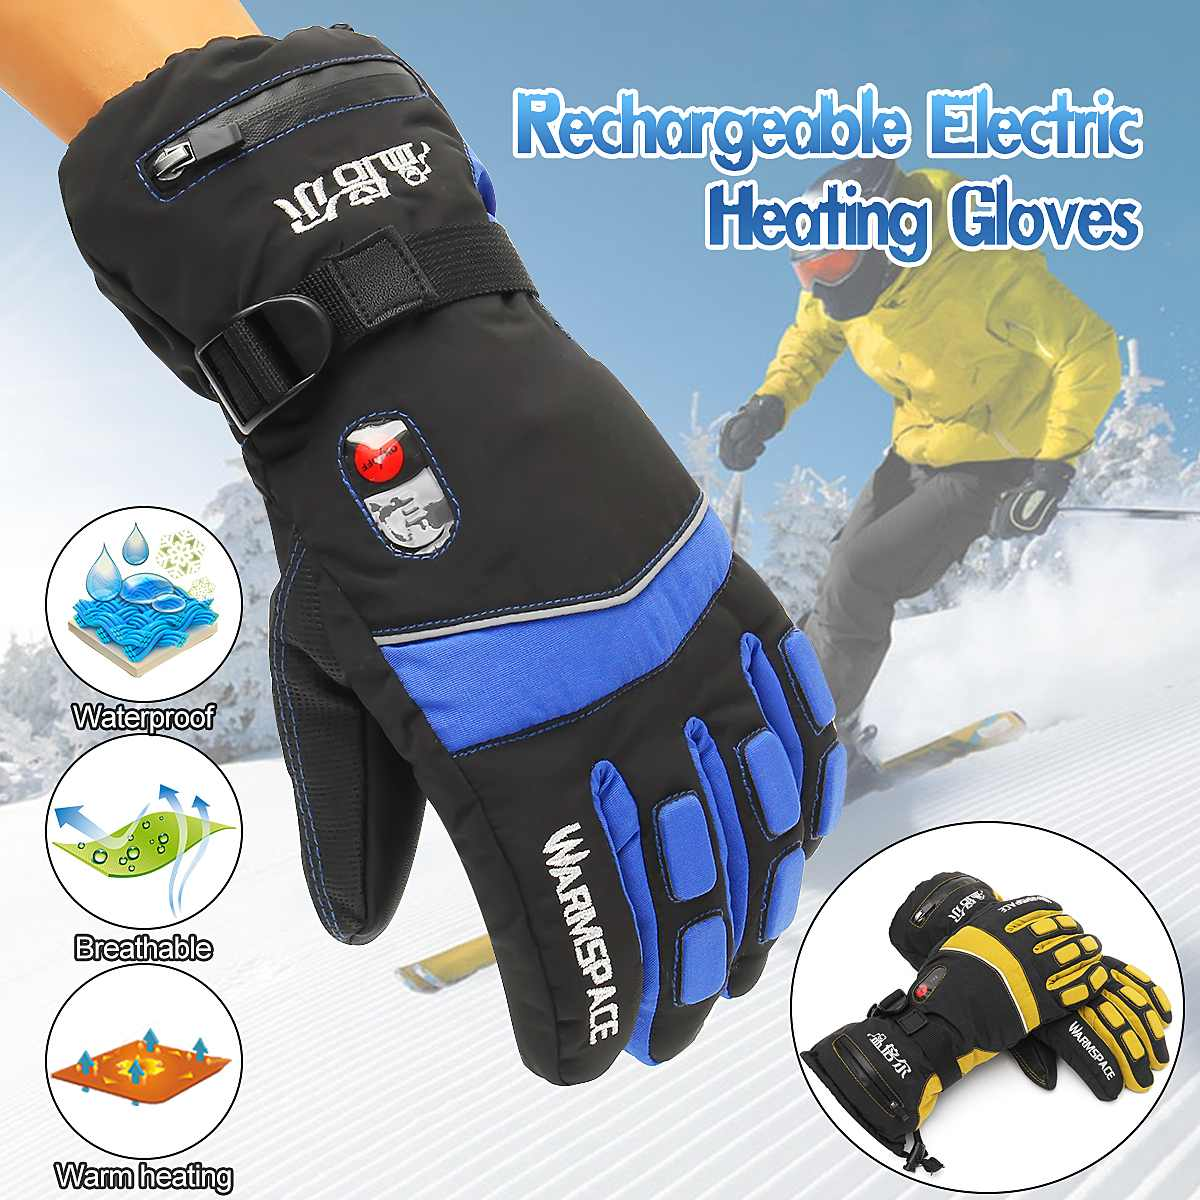 лучшая цена Winter Hand Warmer Electric Thermal Gloves Waterproof Heated Gloves Cycling Motorcycle Heating Ski Gloves Unisex M/XL 1 Pair